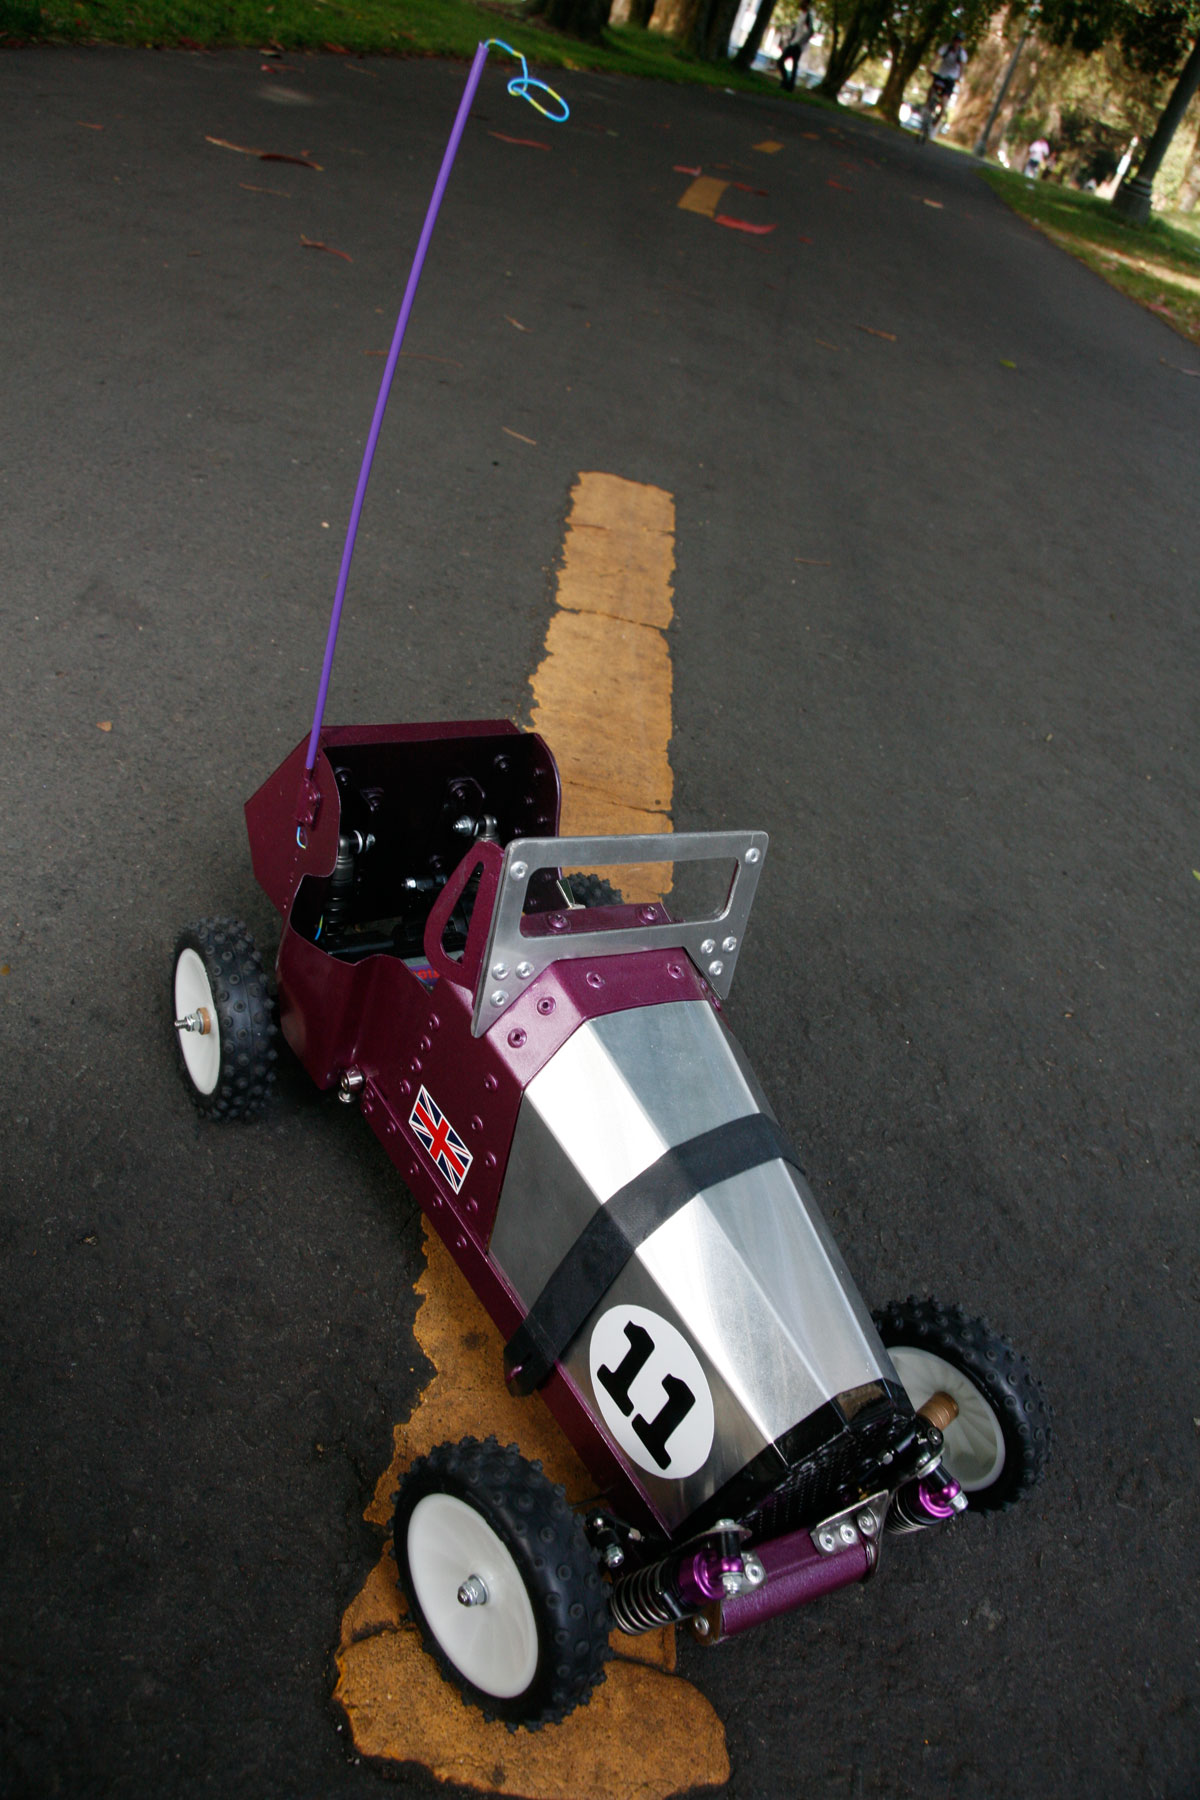 Cars DIY Projects for Makers | Make: DIY Projects and Ideas for Makers